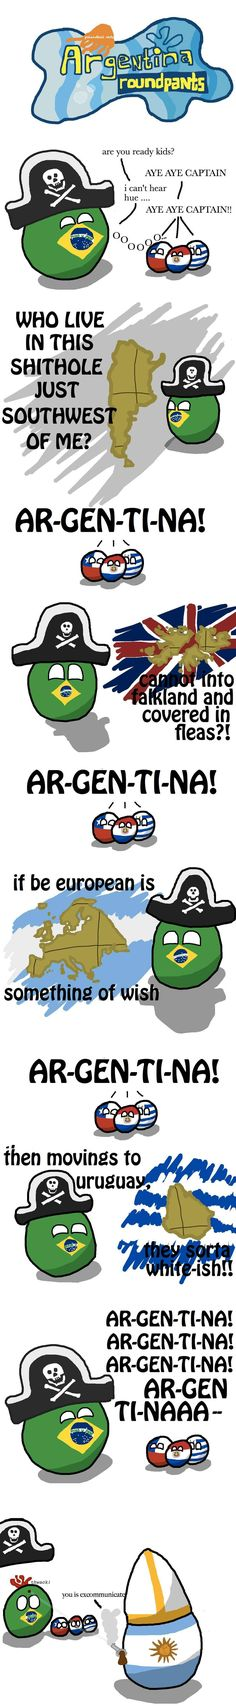 """Argentina Roundpants"" ( Brazil, Chile, Paraguay, Uruguay, Argentina ) by krackpotkin https://www.reddit.com/r/polandball/comments/1feg6n/argentina_roundpants/ #polandball #countryball"